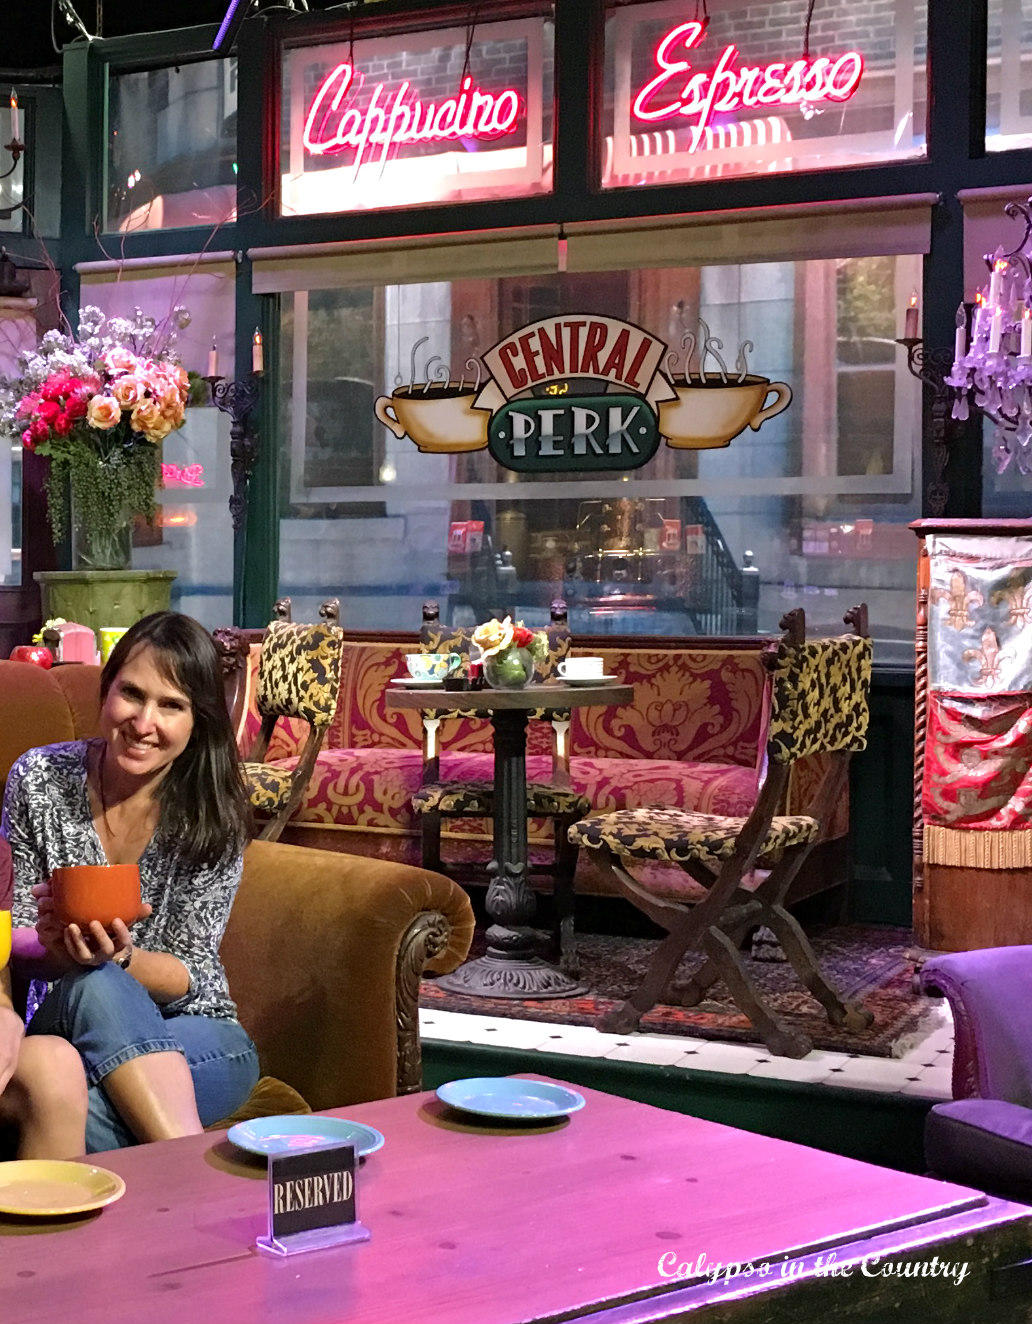 Central Perk - Friends Set - WB Studios Hollywood